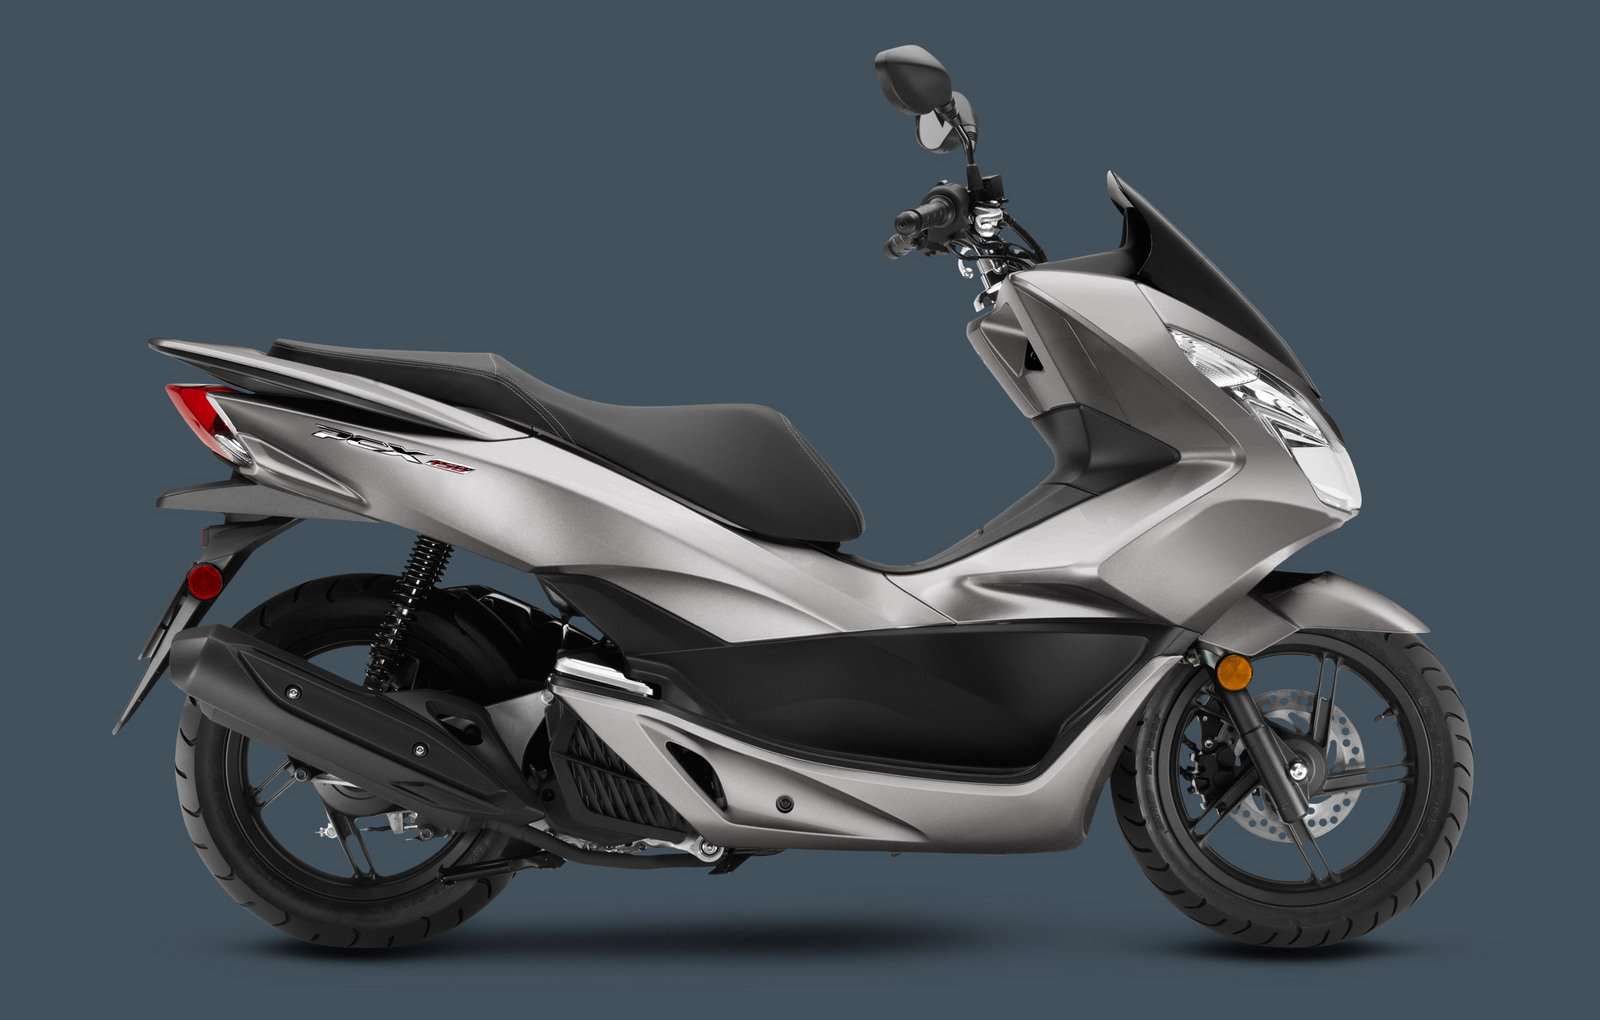 2015 2017 honda pcx150 picture 654624 motorcycle. Black Bedroom Furniture Sets. Home Design Ideas